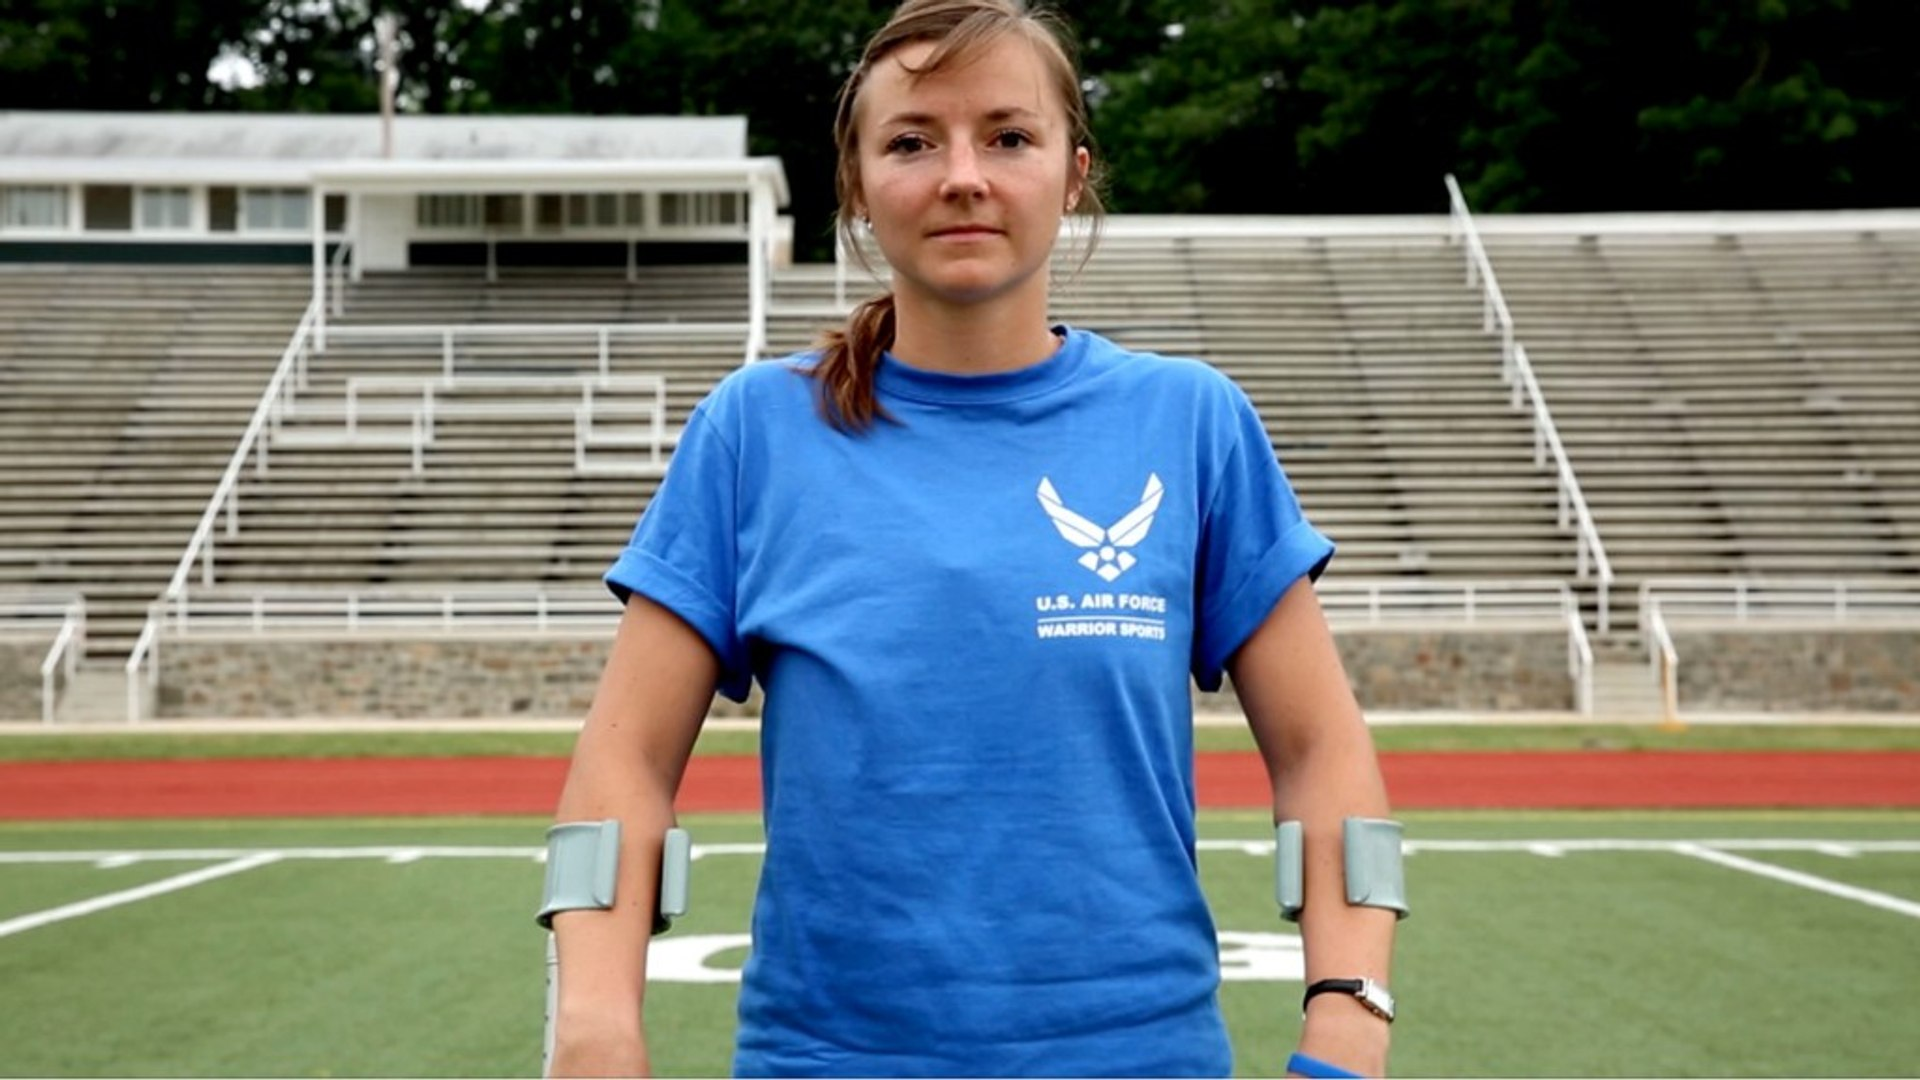 Nine weeks after losing her leg, an Air Force pilot competes in the Warrior games